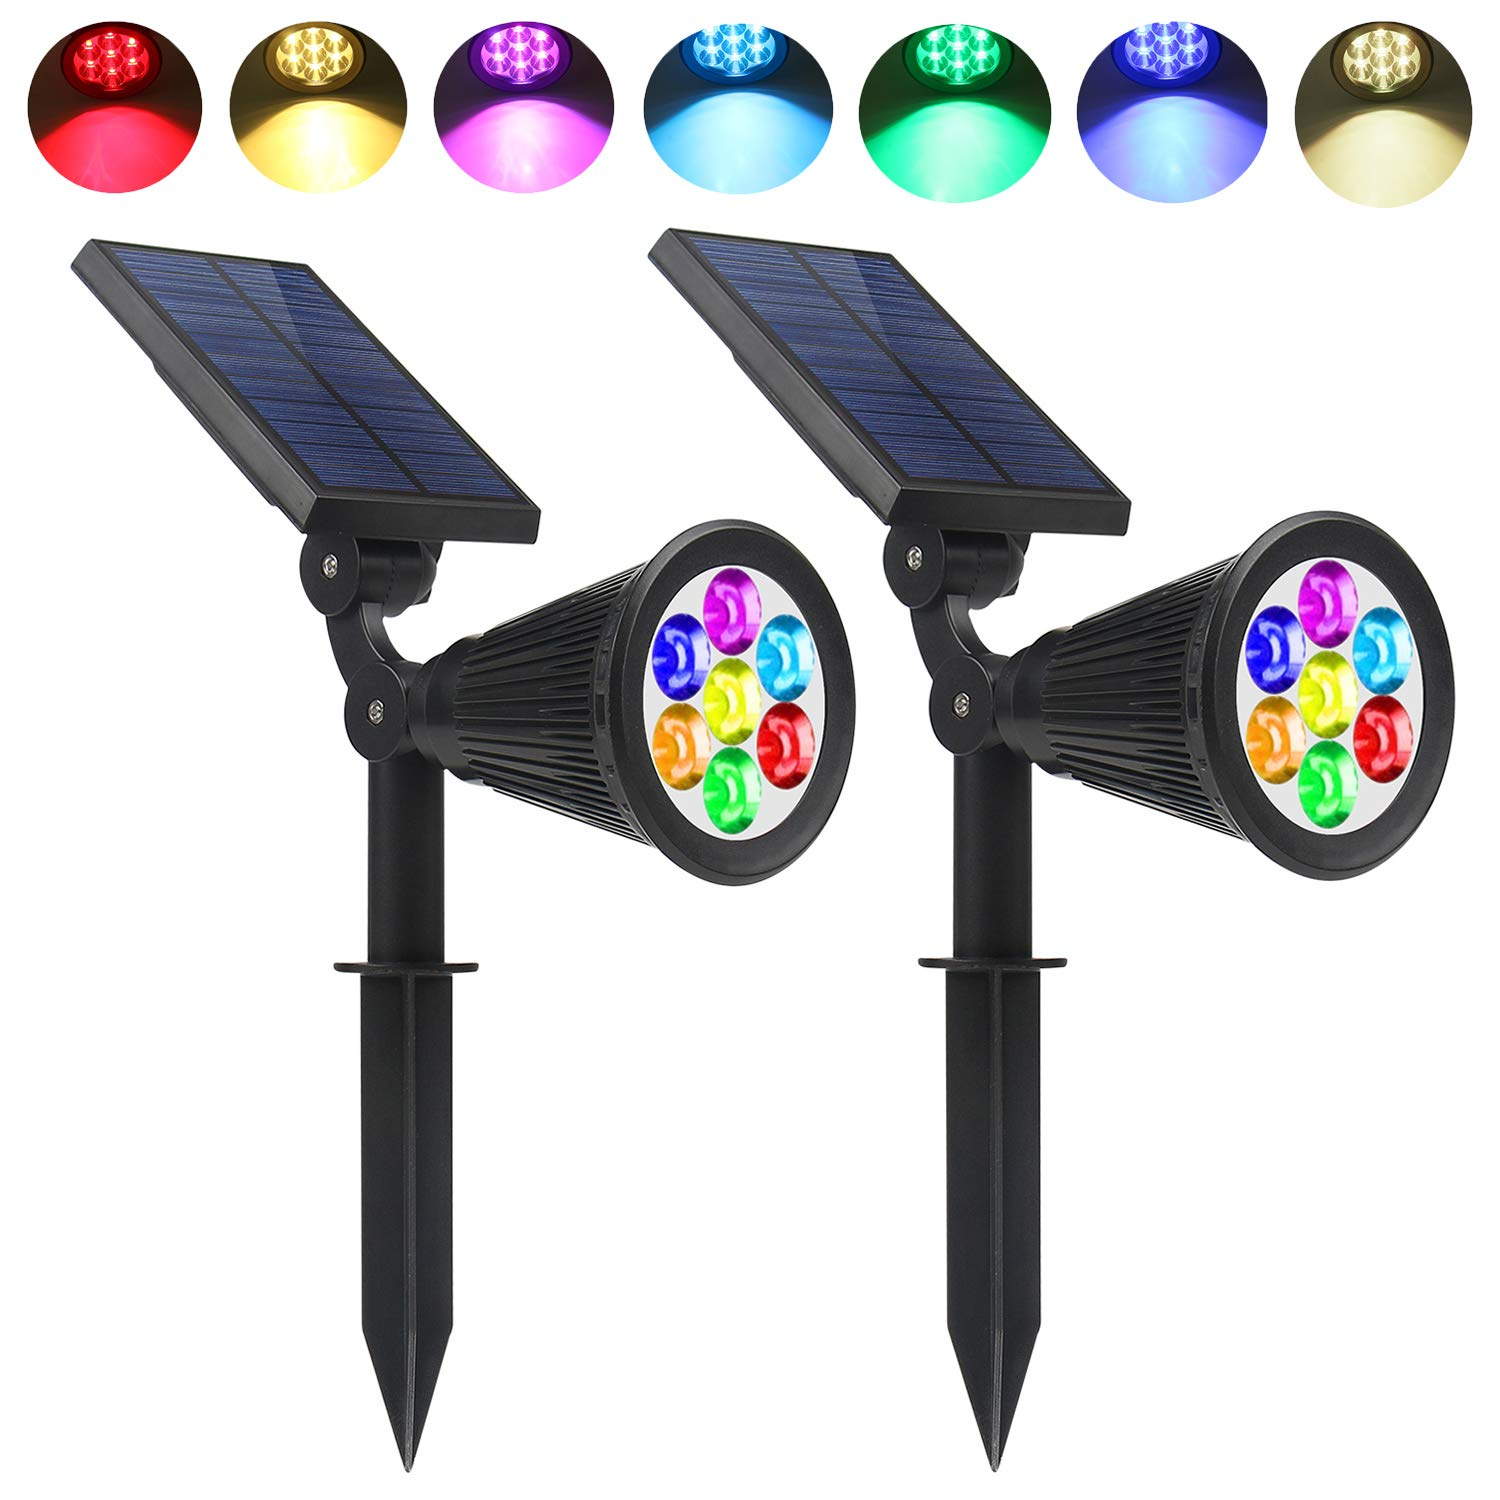 Solar Spotlights Outdoor 7 LED Solar Powered Garden Spot Lights Multi Color Waterproof Up Light Dusk to Dawn for Landscape Wall Trees Yard Pathway Lawn Decor Auto On/Off (2-Pack)